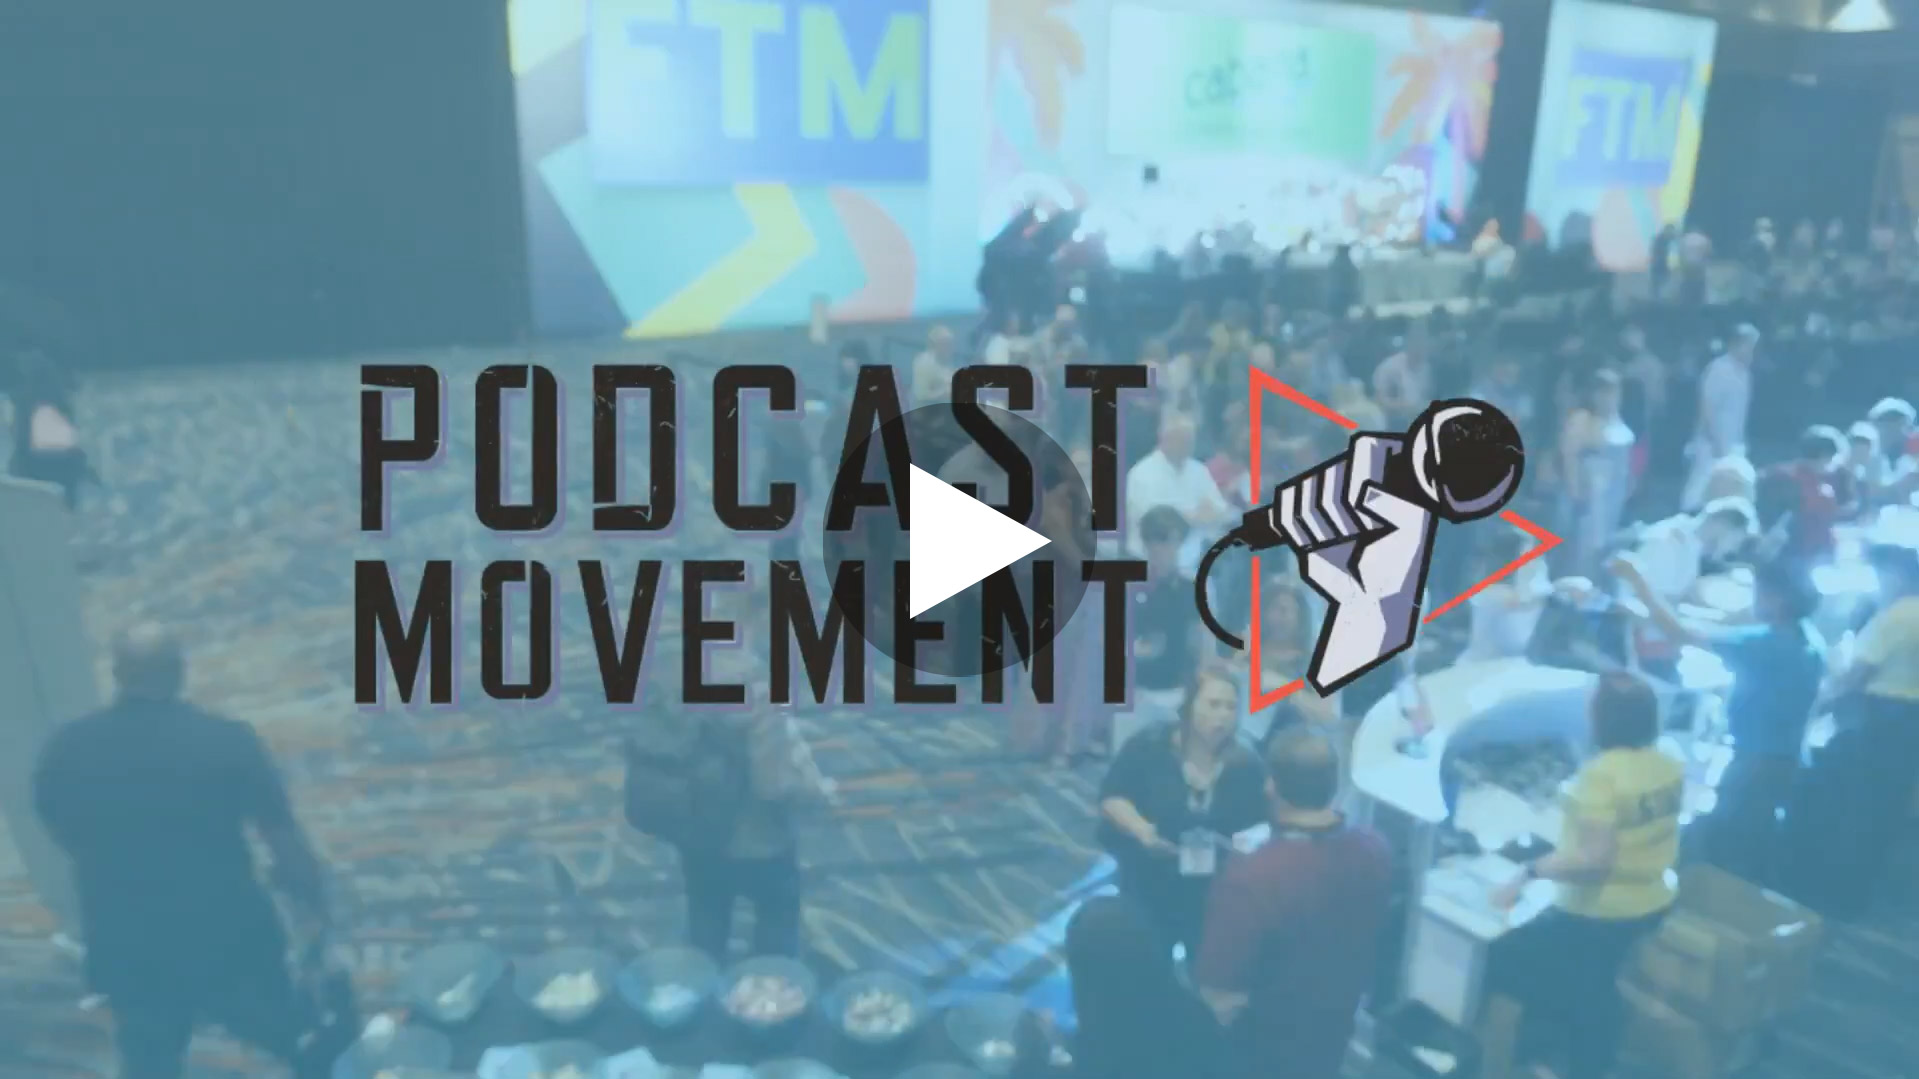 Podcast Movement 2019 Highlights